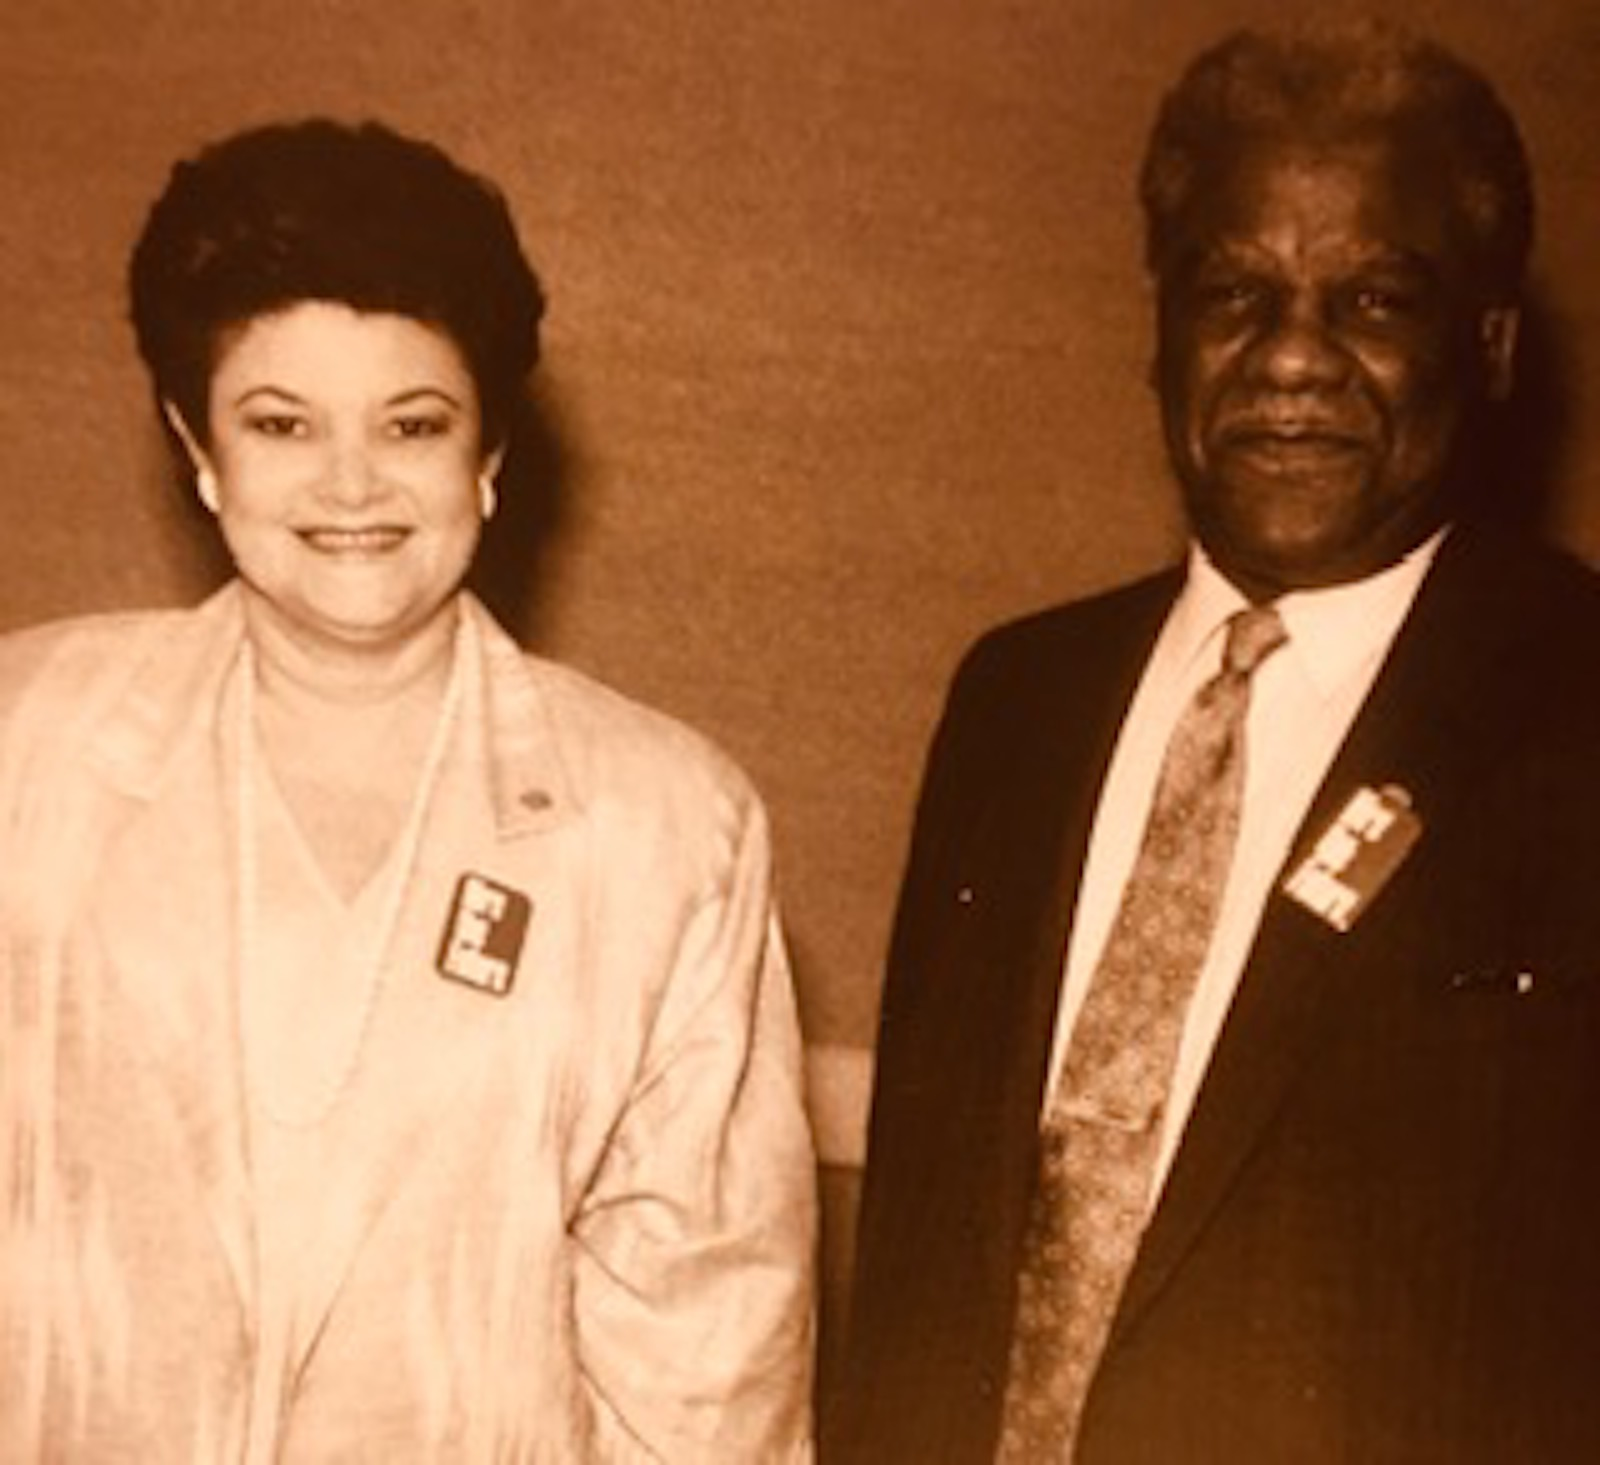 María Cerda with the late Mayor Harold Washington, who made her chief of the Mayor's Office of Employment and Training.